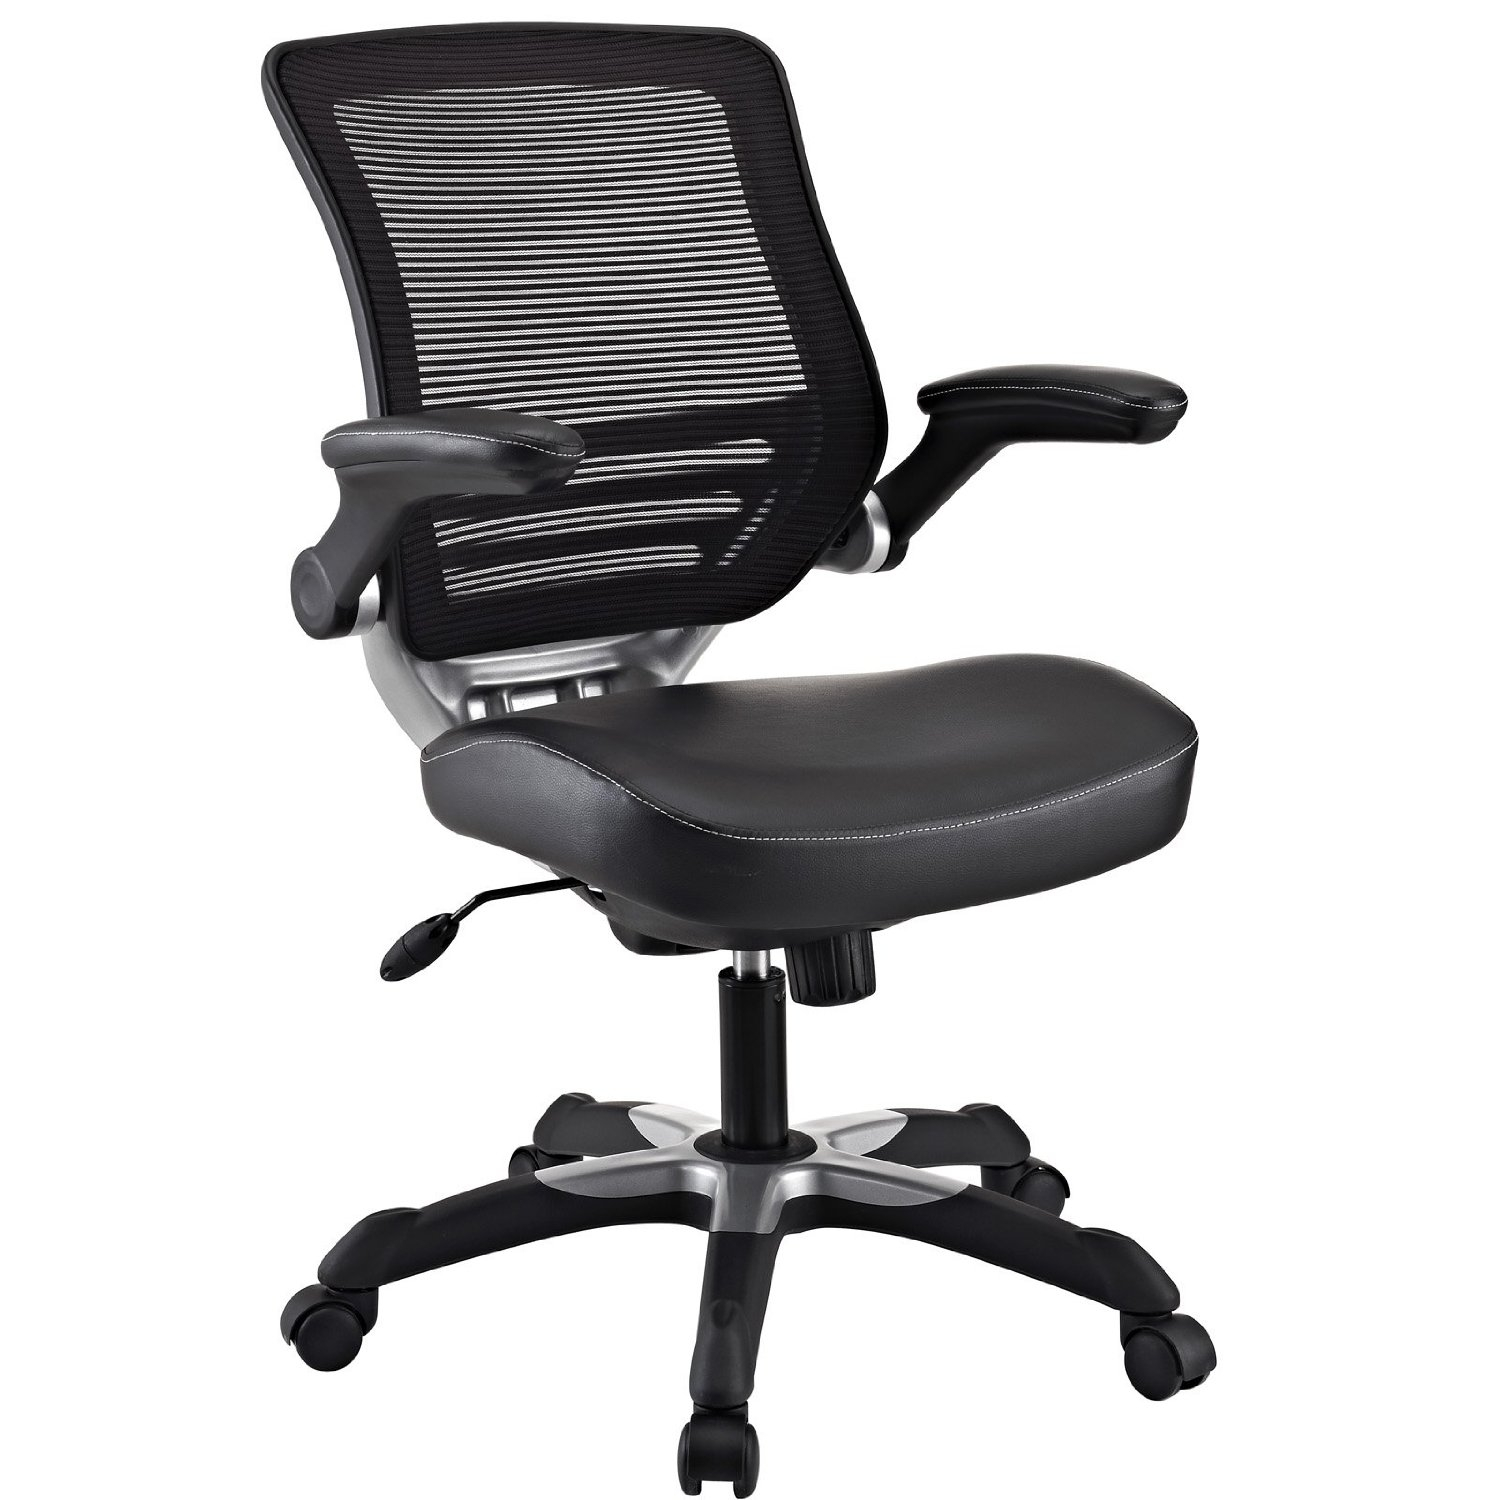 Modern Black Mesh Back Ergonomic fice Chair with Flip up Arms